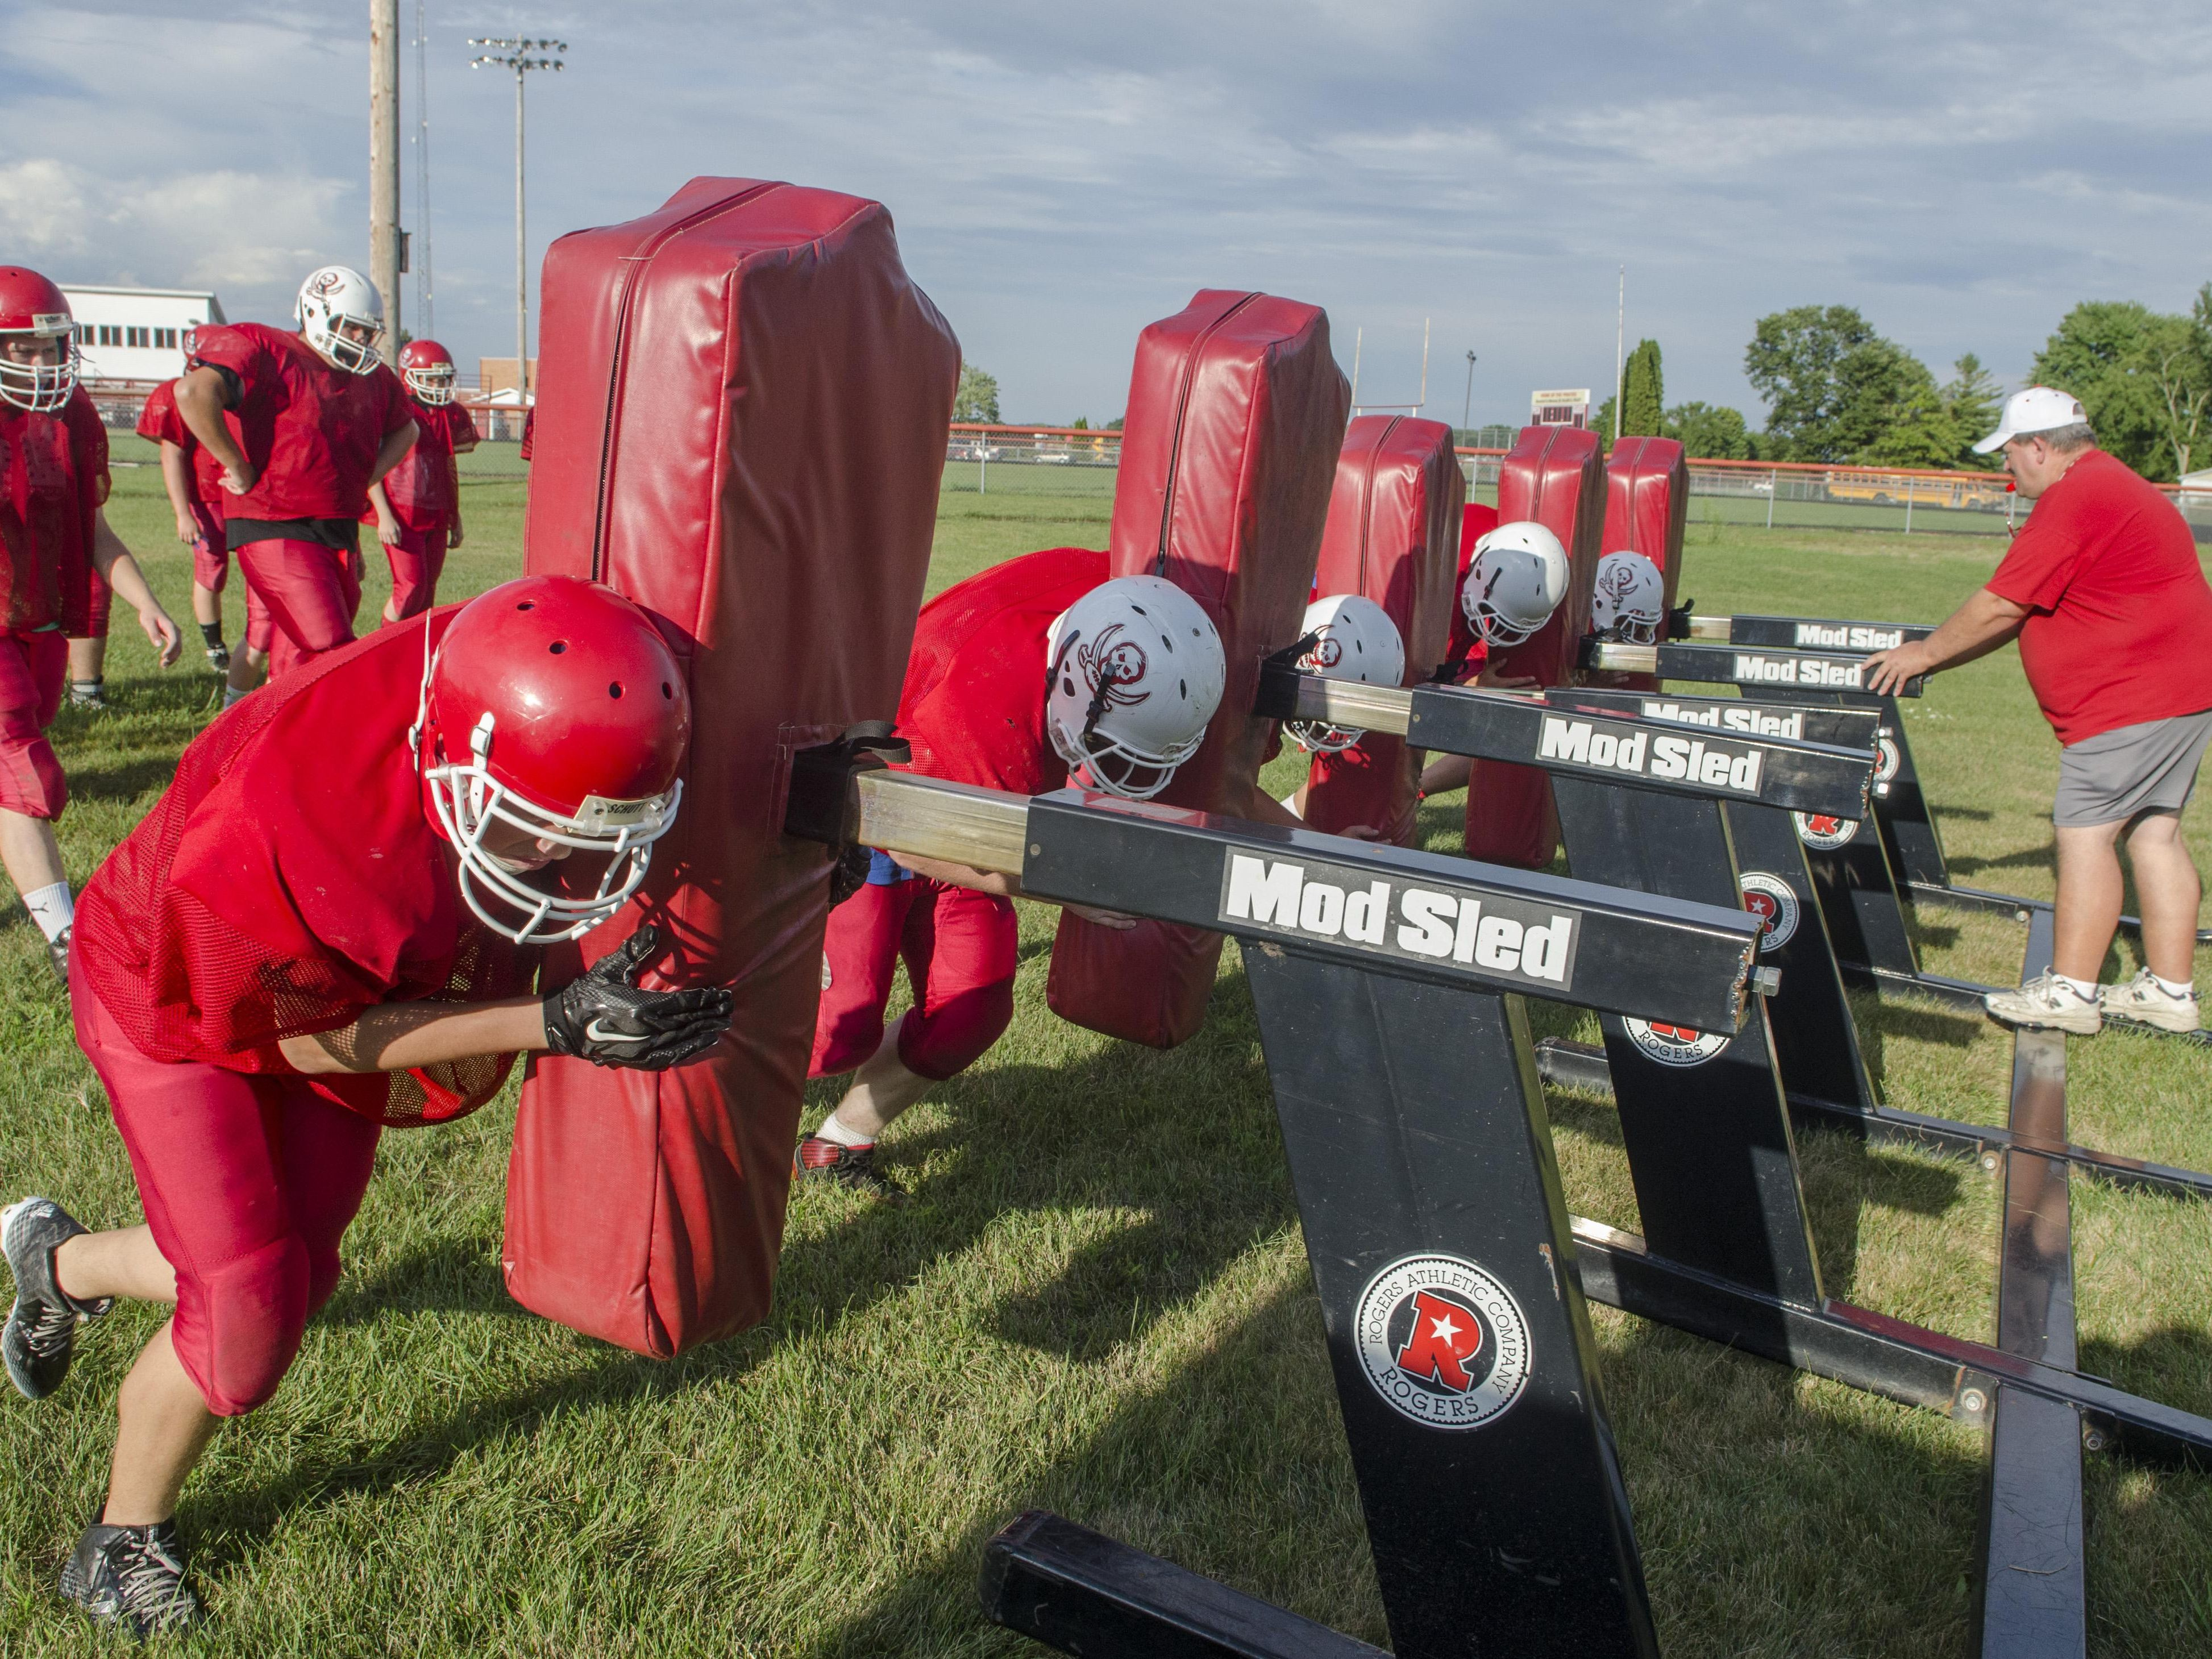 Peck's head coach Rob McDaniel runs his players on a sled Wednesday, Aug. 17 during their football practice at Peck High School.